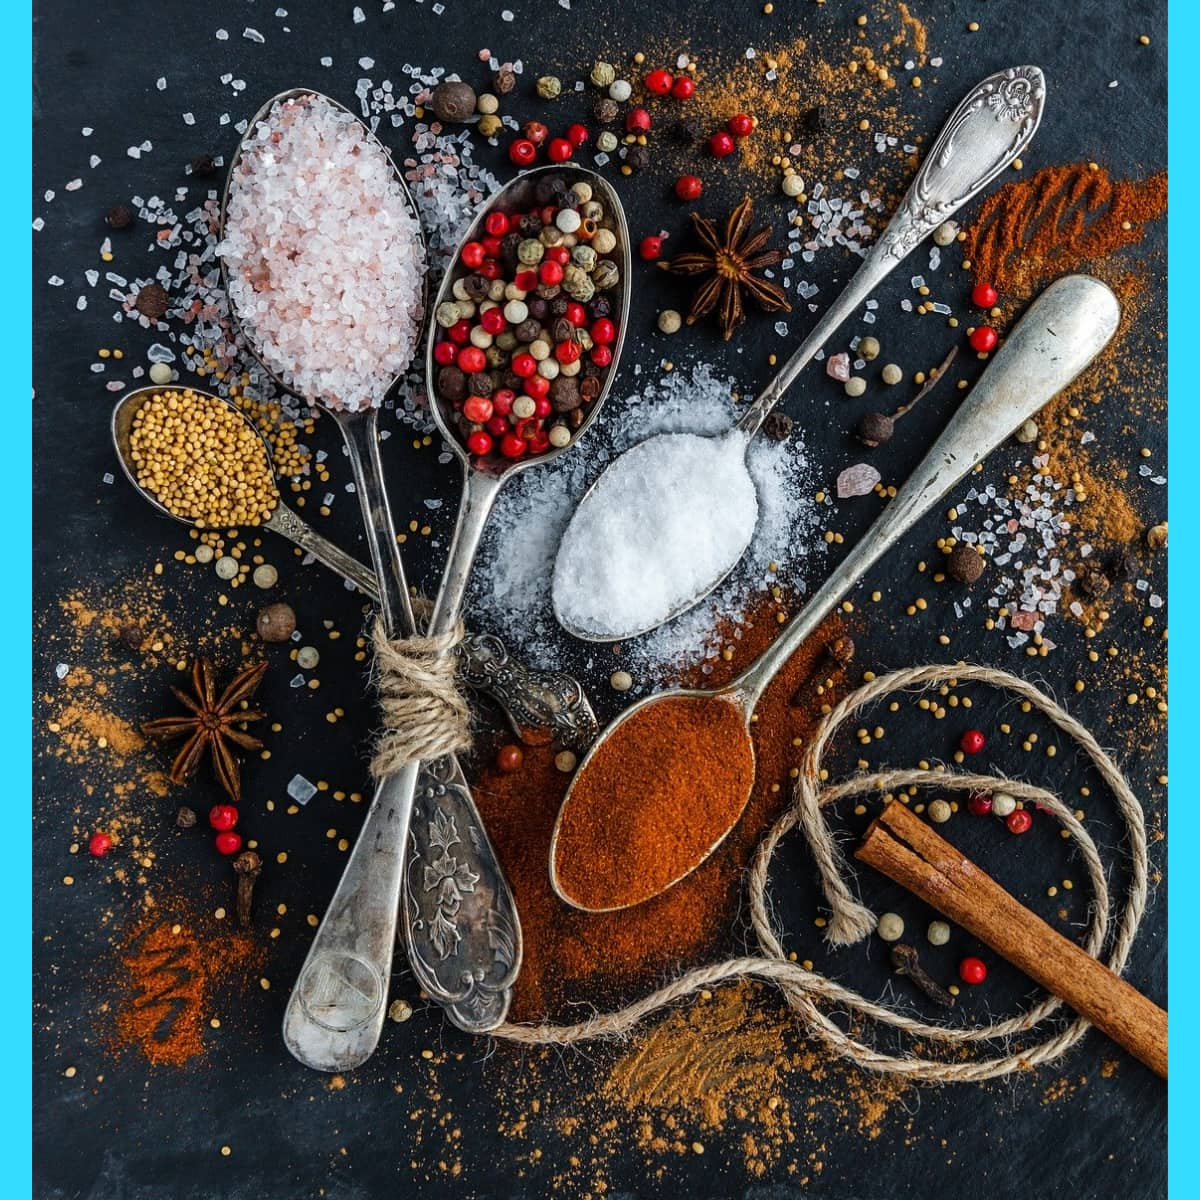 Spices in teaspoons and scattered on a dark board